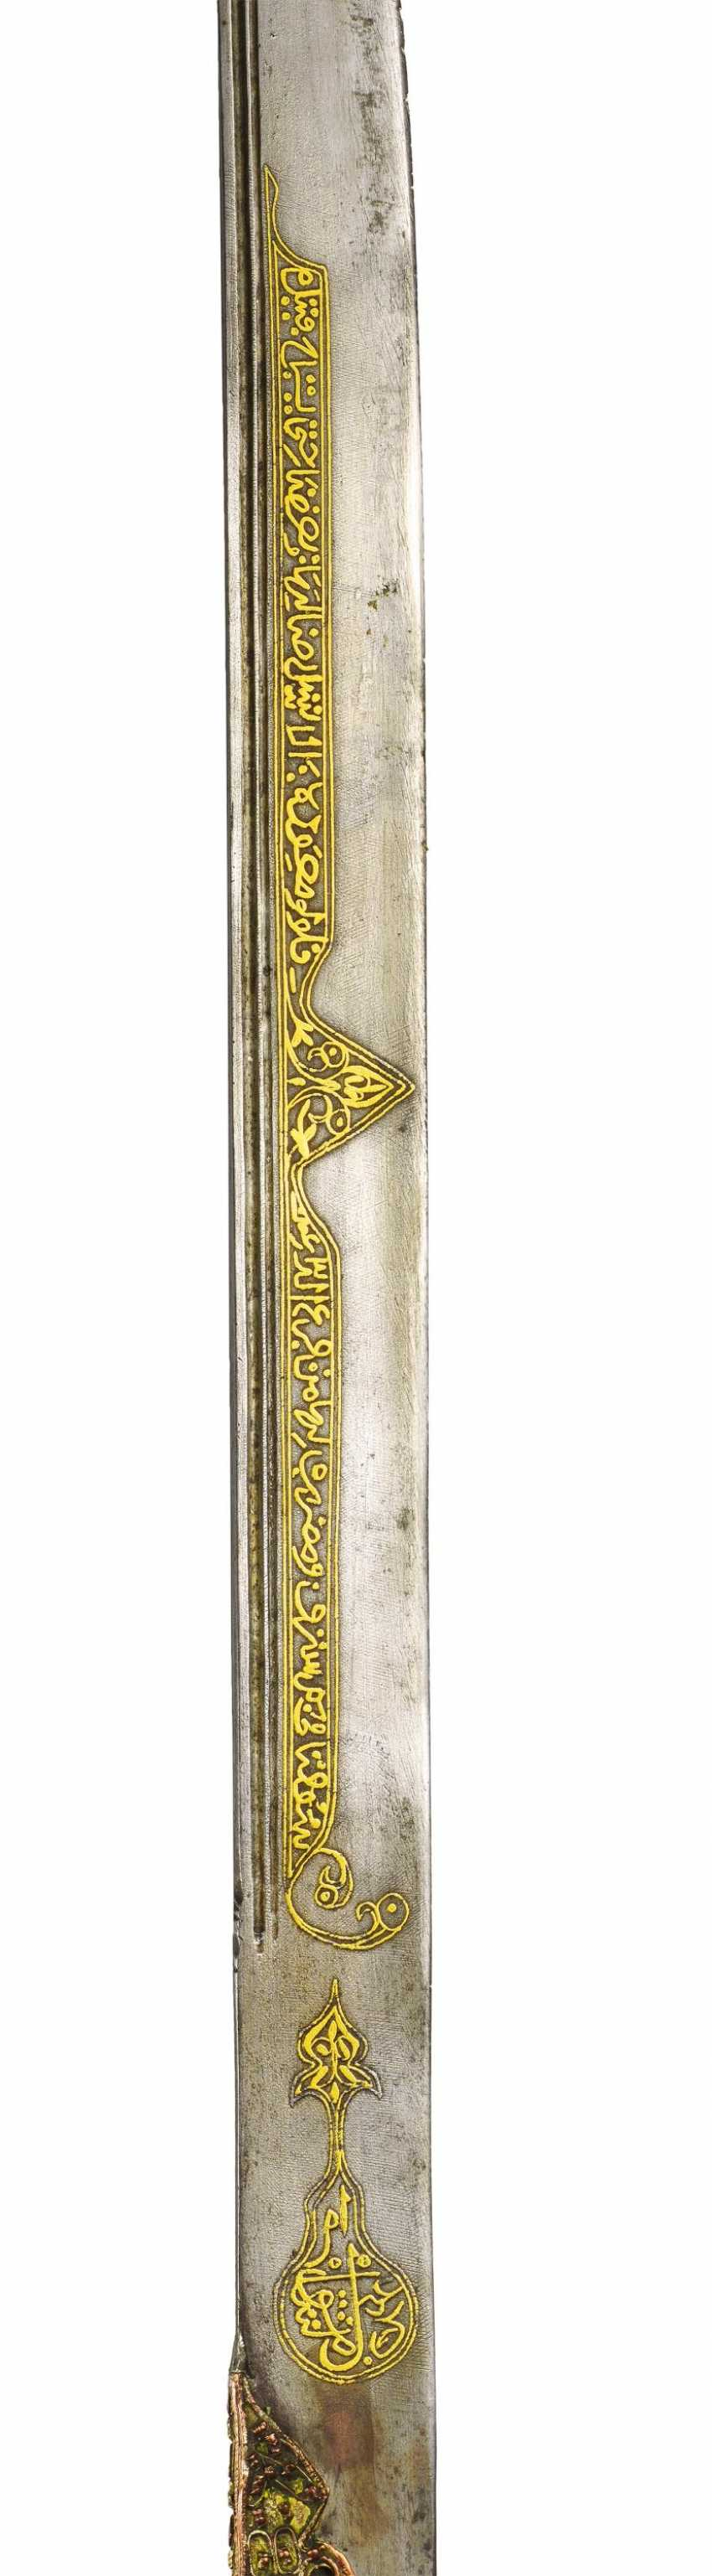 Magnificent Yatagan Sword Buy At Online Auction At Veryimportantlot Com Auction Catalog 446 Auction Asian Art From 27 05 2020 Photo Price Auction Lot 74